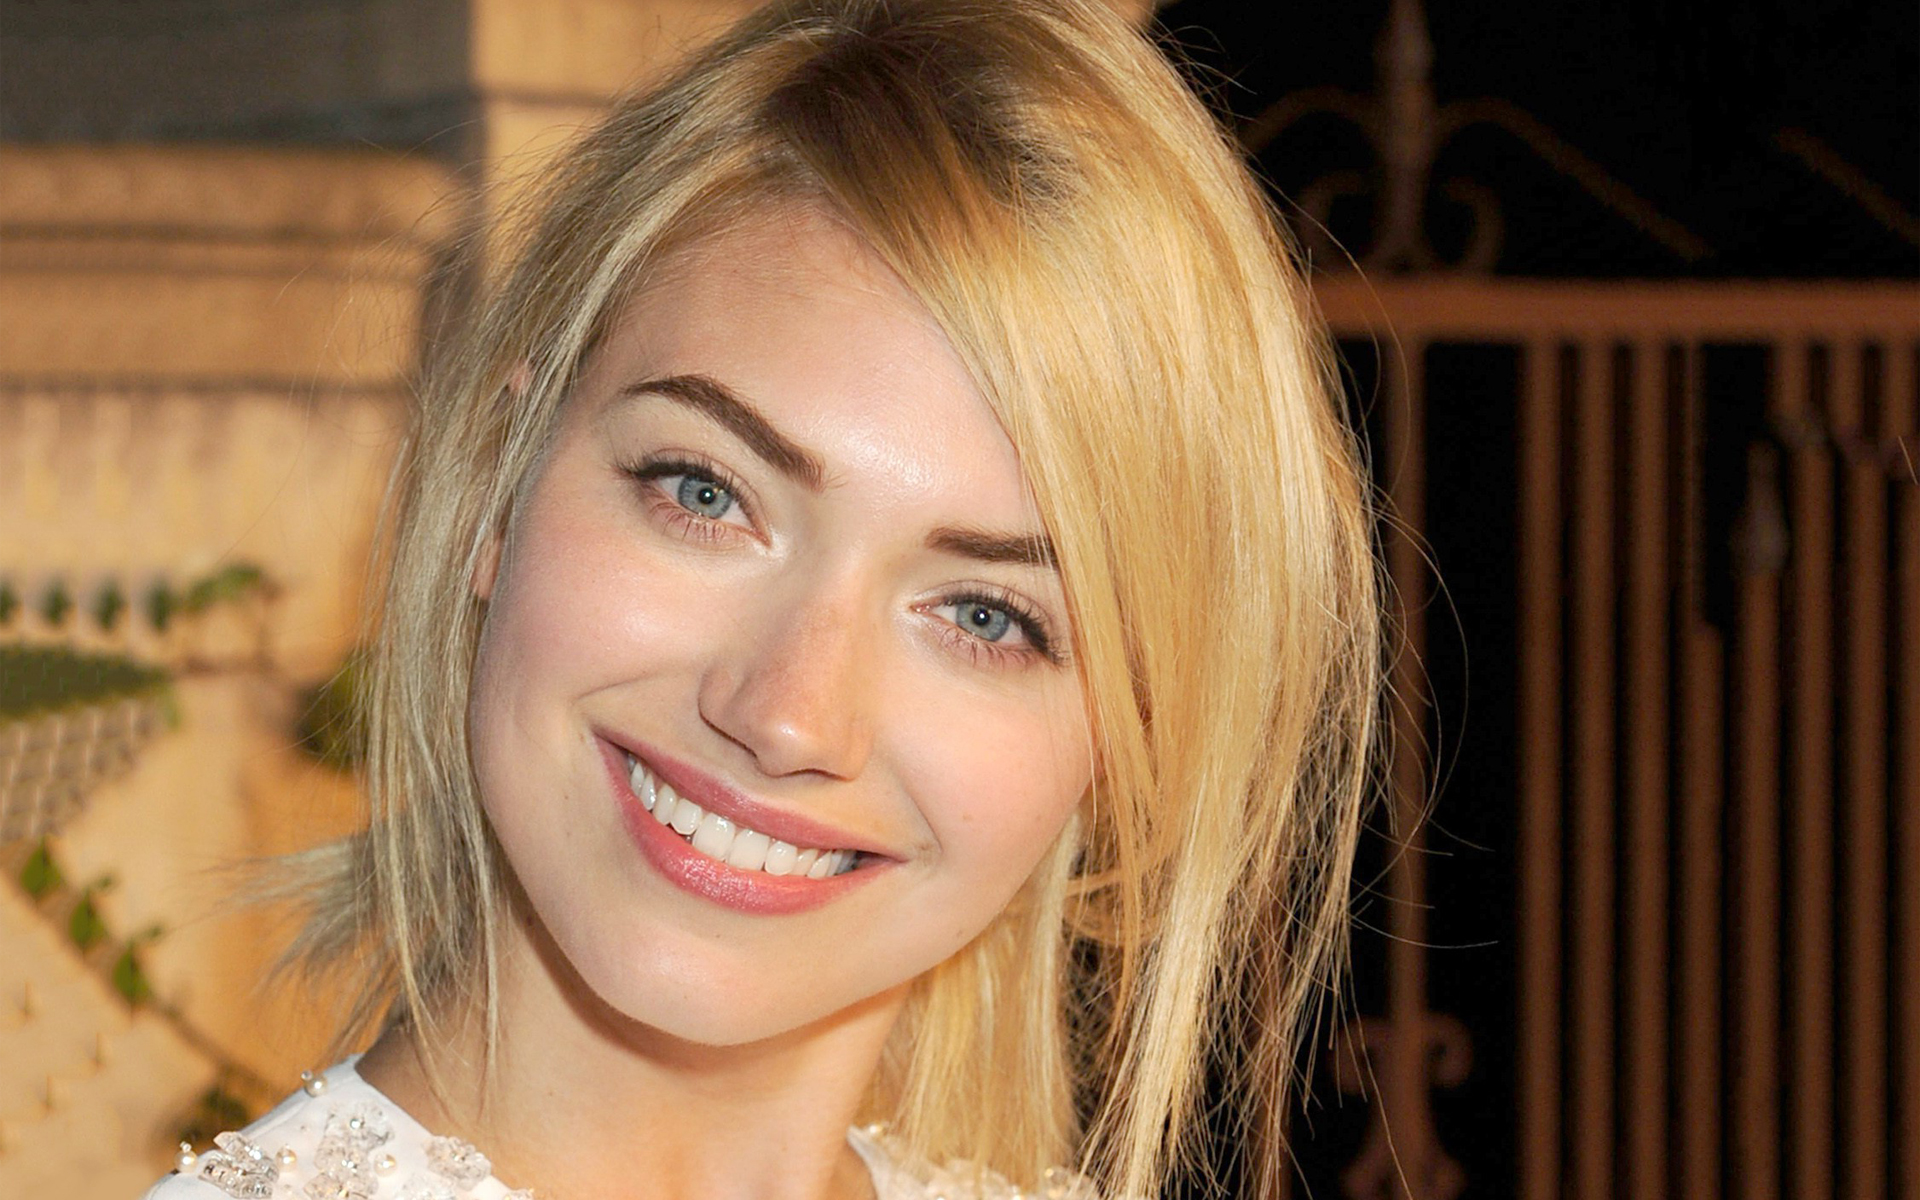 Imogen Poots Wallpaper 1920x1200 19930